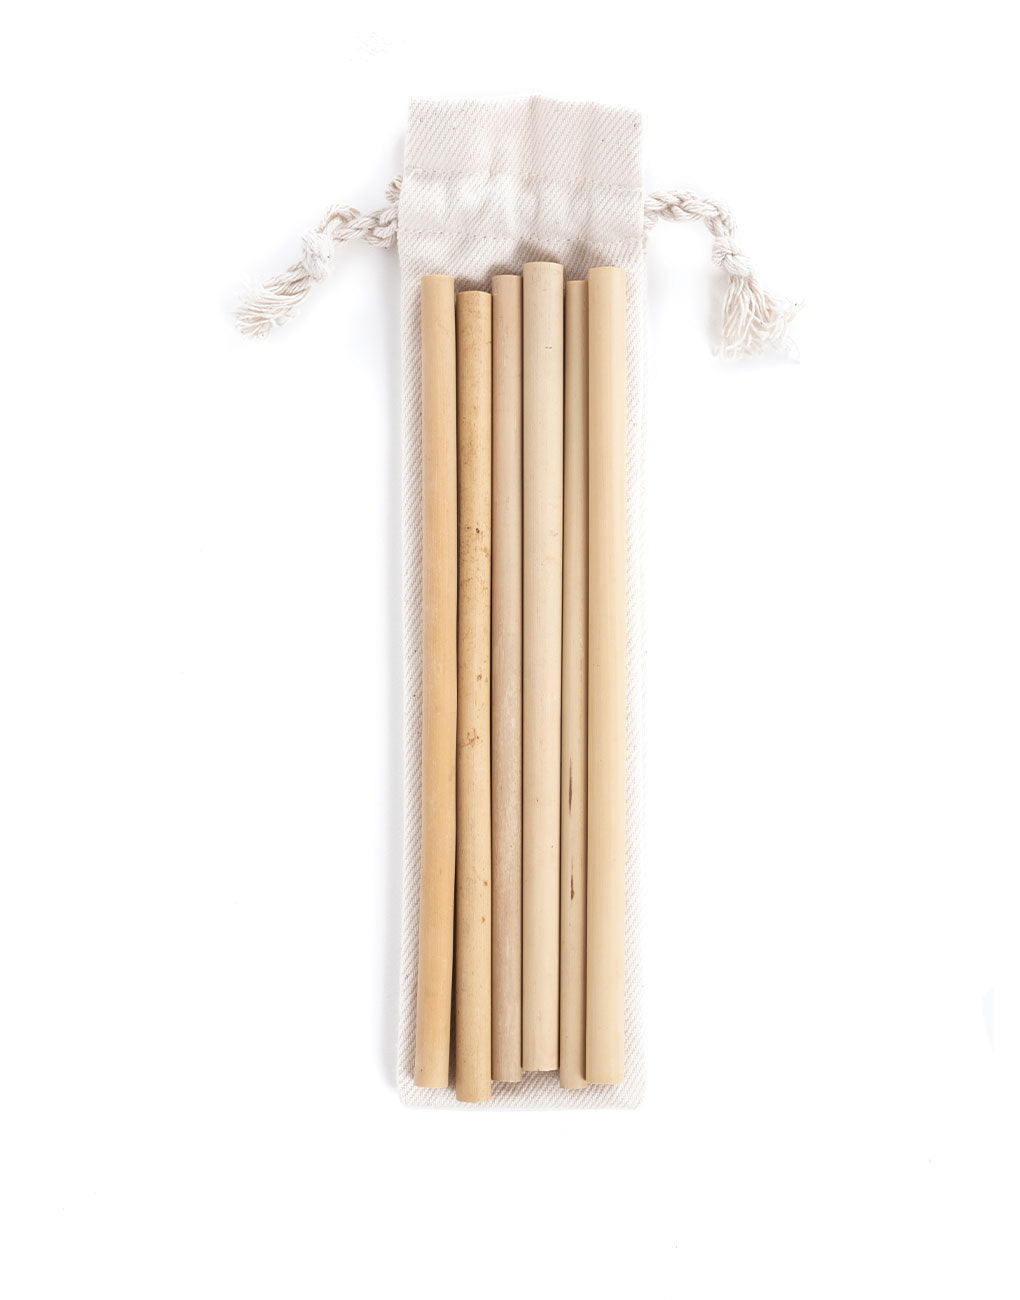 Reusable Bamboo Straws (Set of 6)